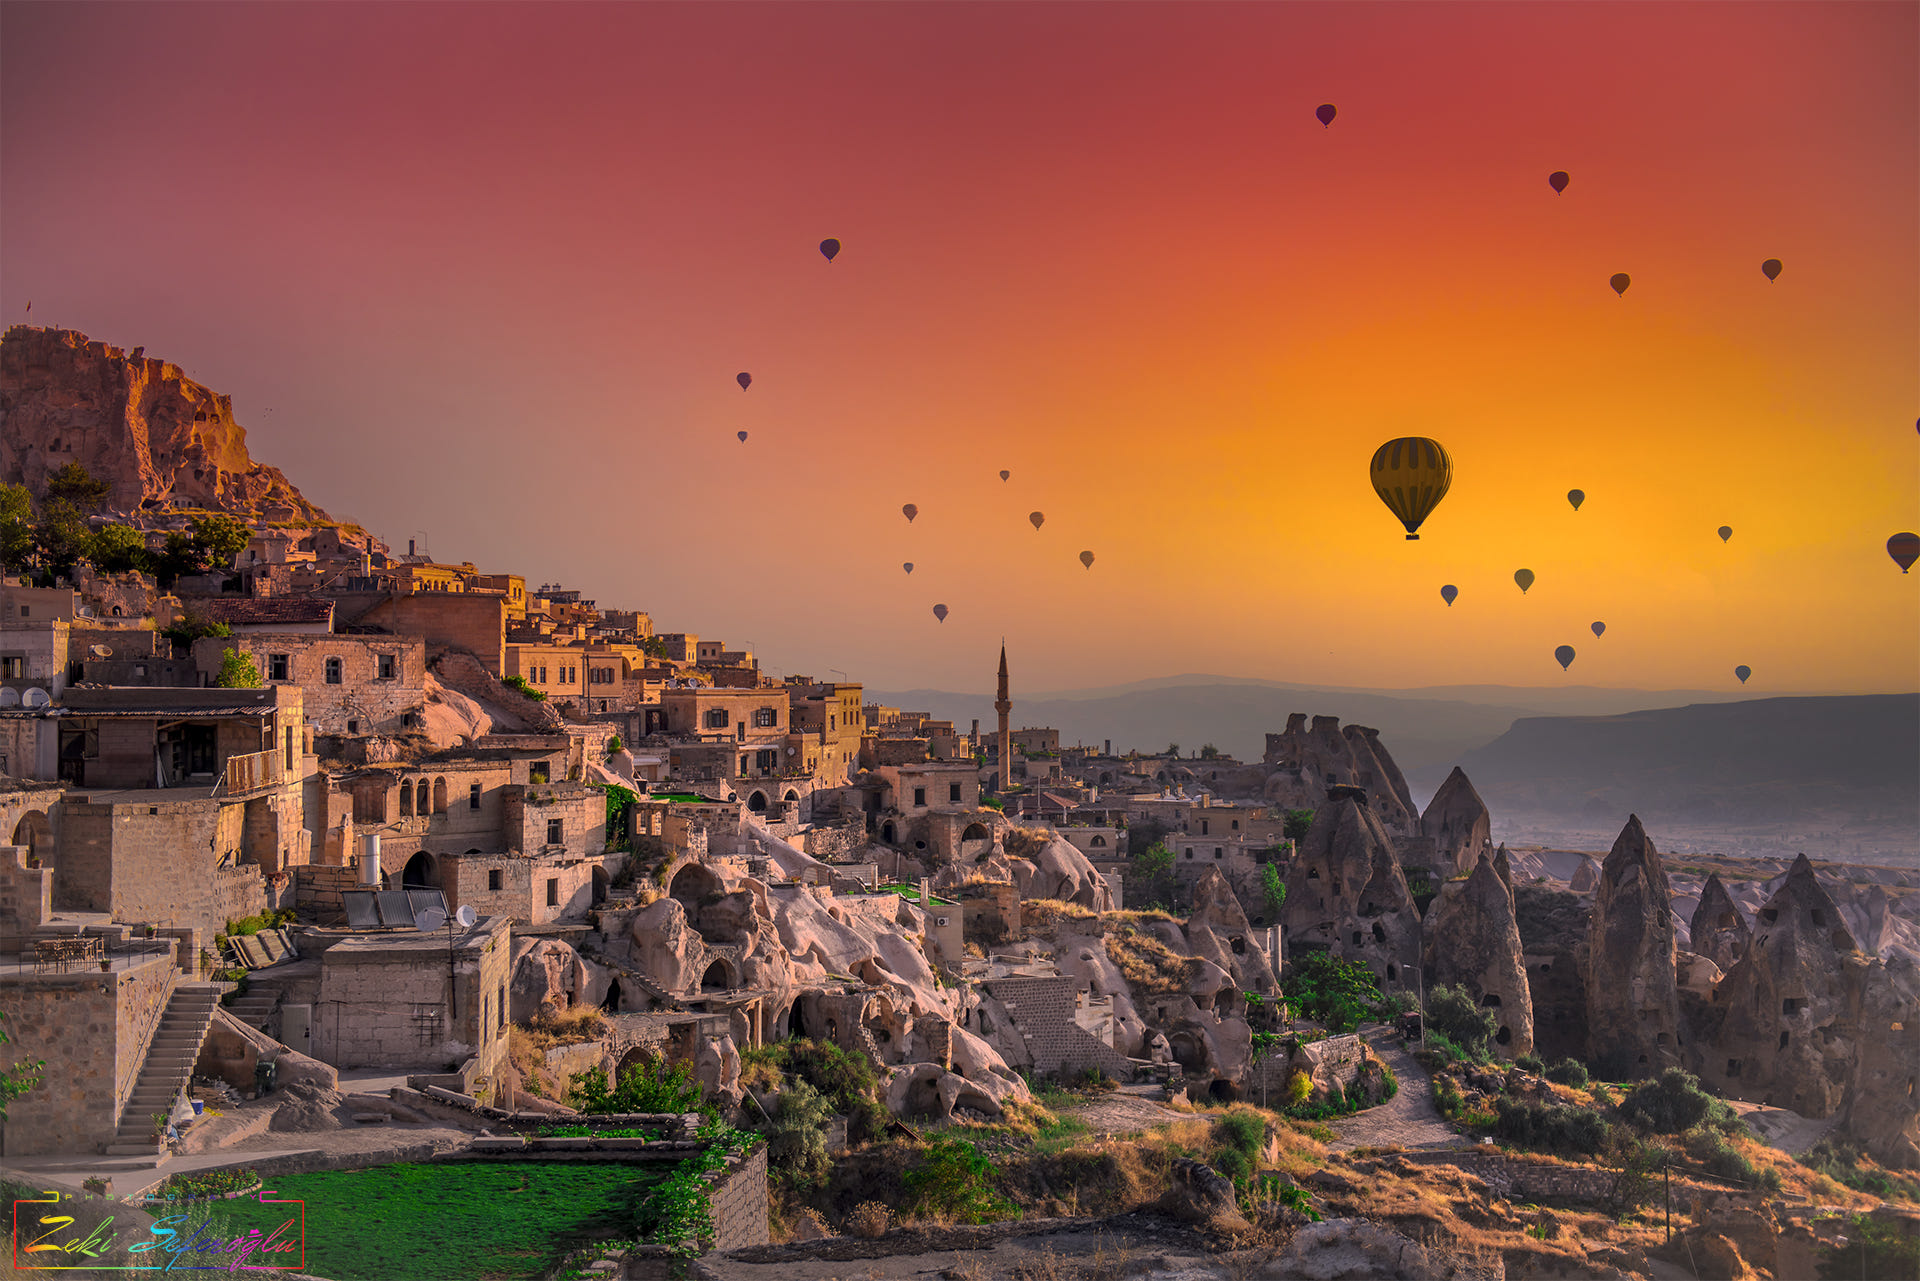 city of ember by zeki seferoglu photo 124511227 500px